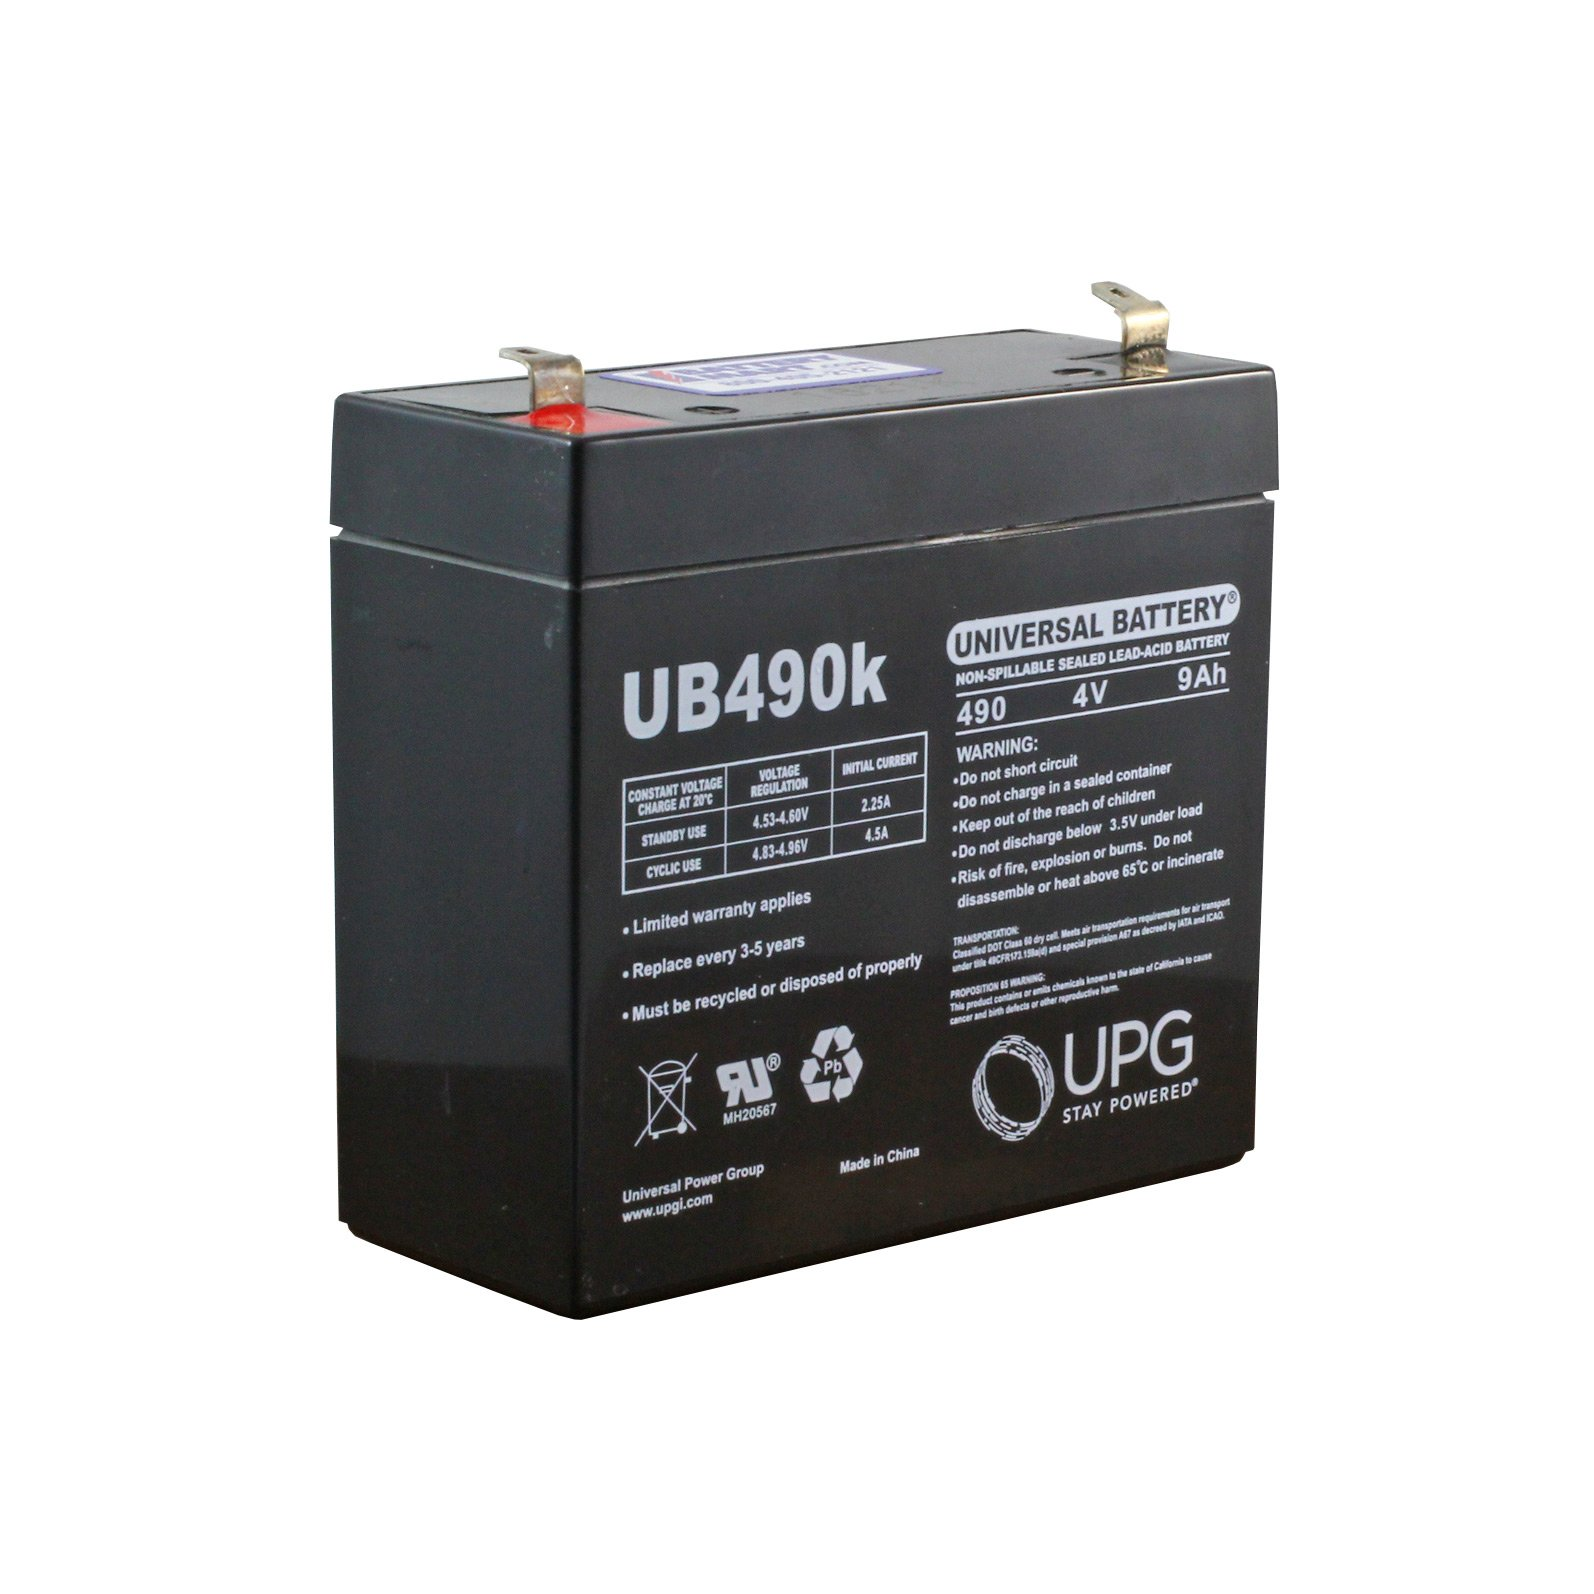 4 Volt 9 Ah Sealed Lead Acid Rechargeable Battery - F1